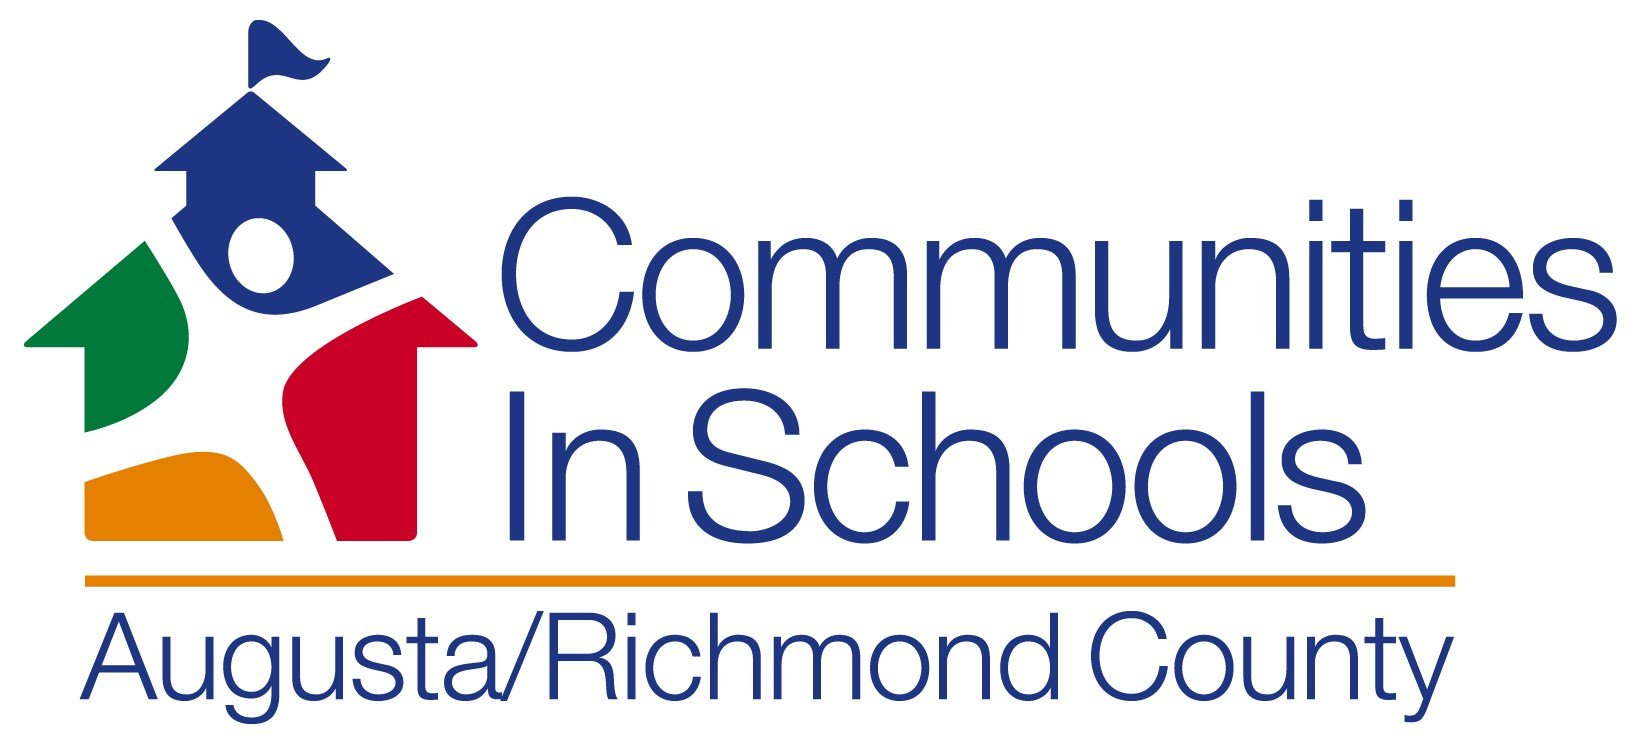 Communities in Schools - Augusta/Richmond County